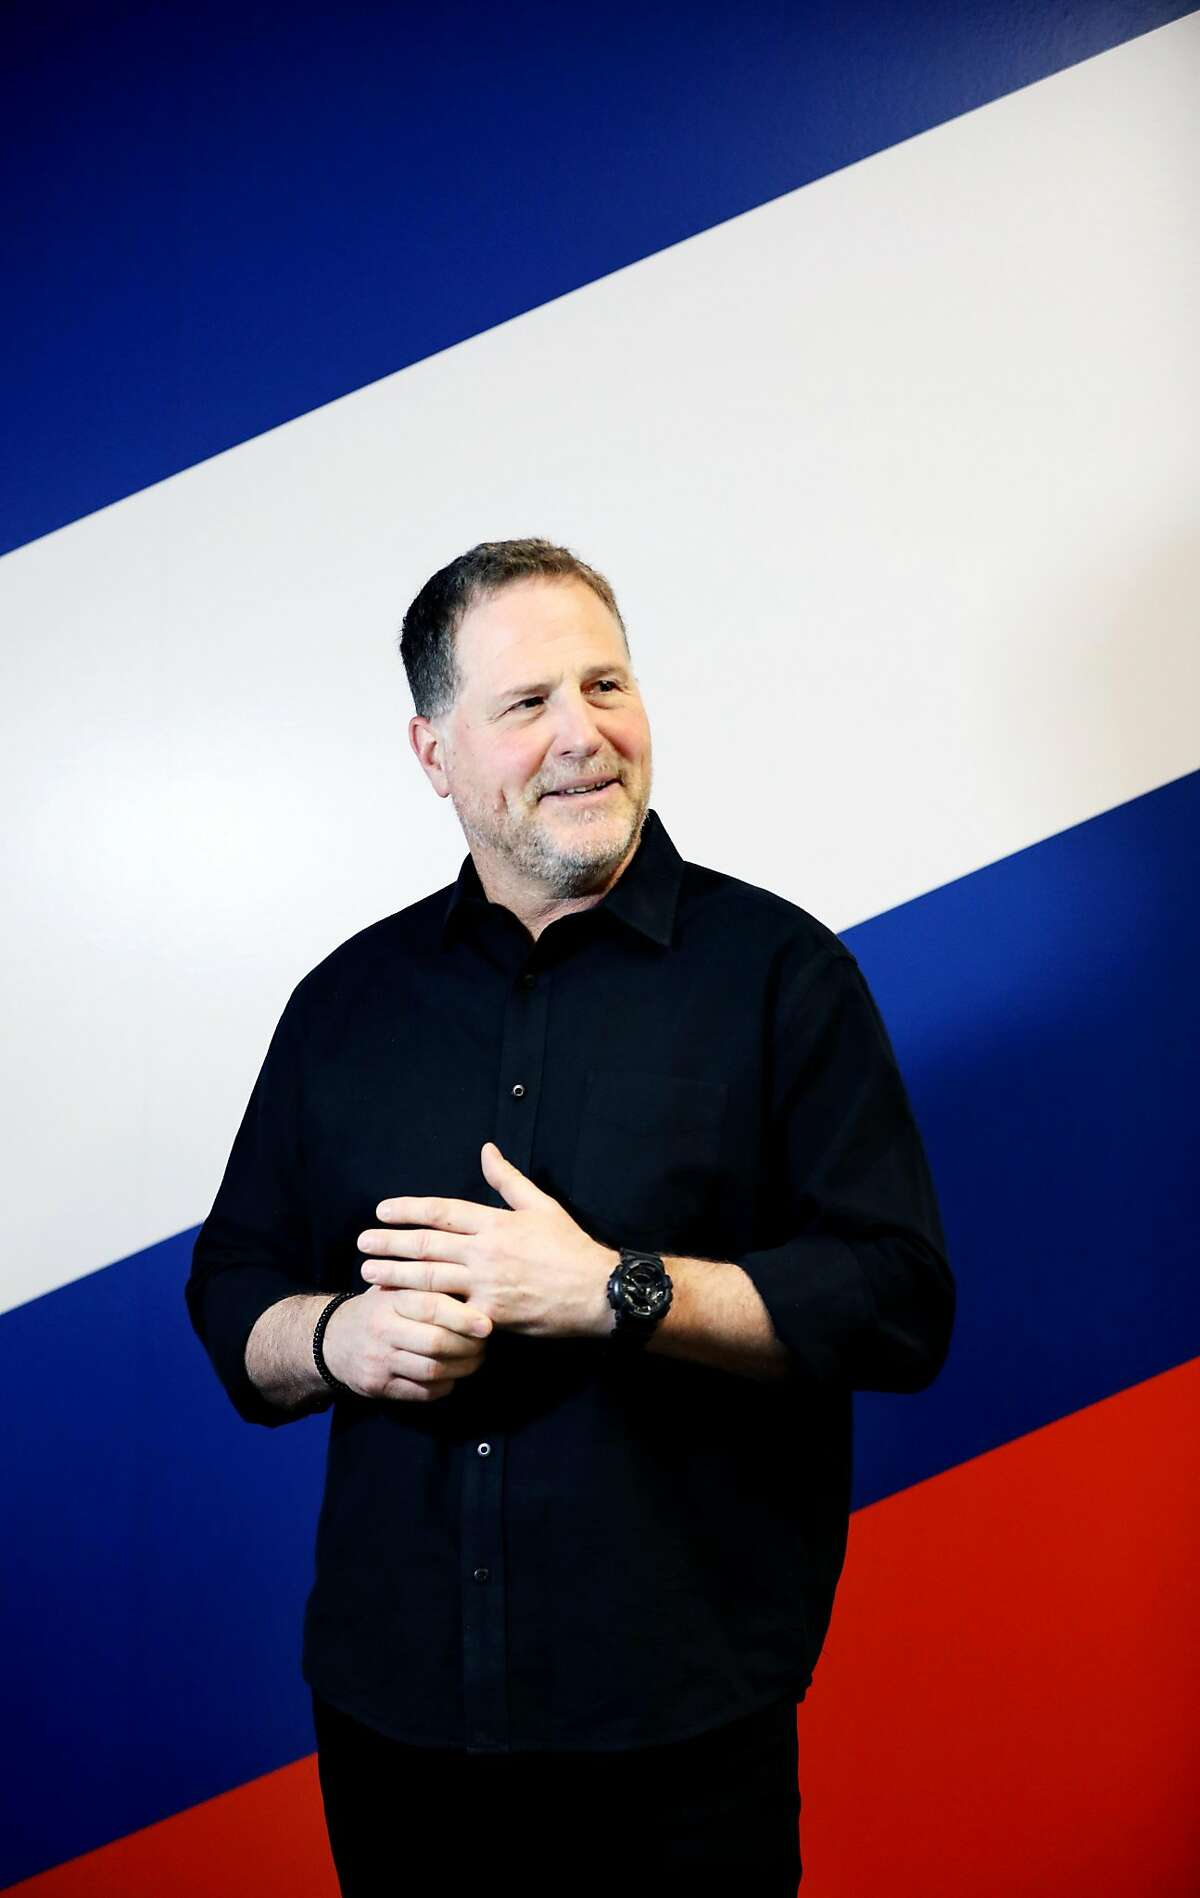 Jay Fulcher, CEO of Zenefits, poses for a portrait at 250 Brannan St., in San Francisco, Calif., on Thursday, January 24, 2019.